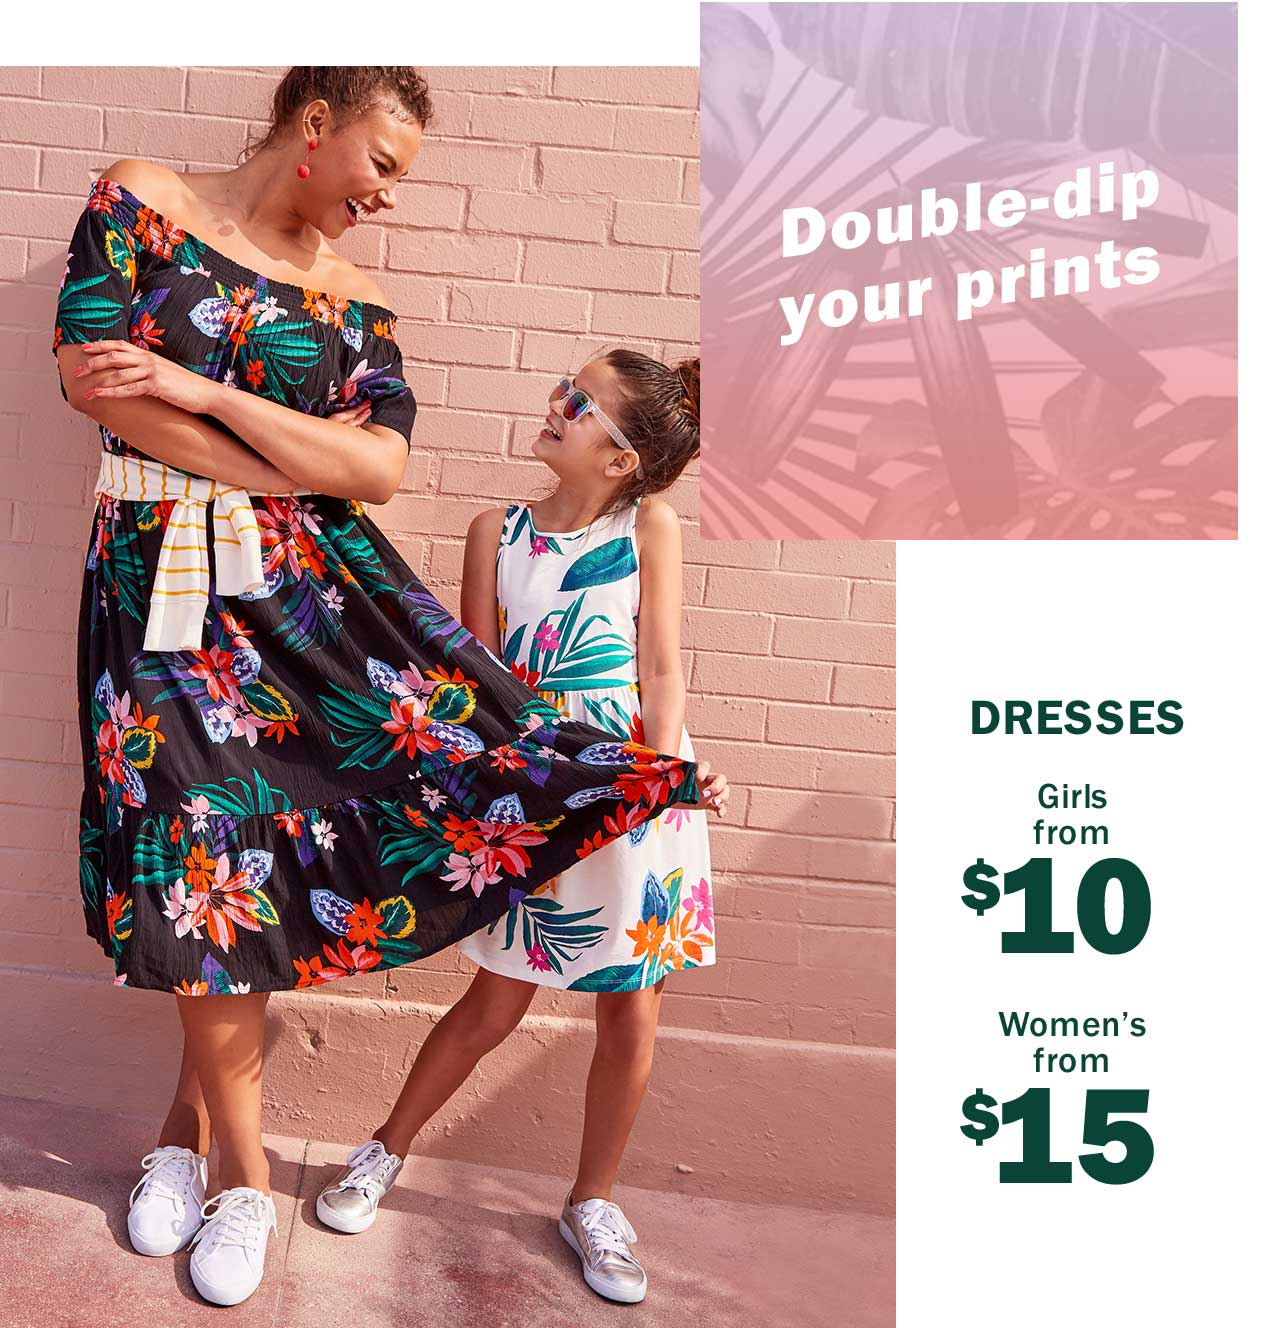 DRESSES | Girls from $10 | Women's from $15